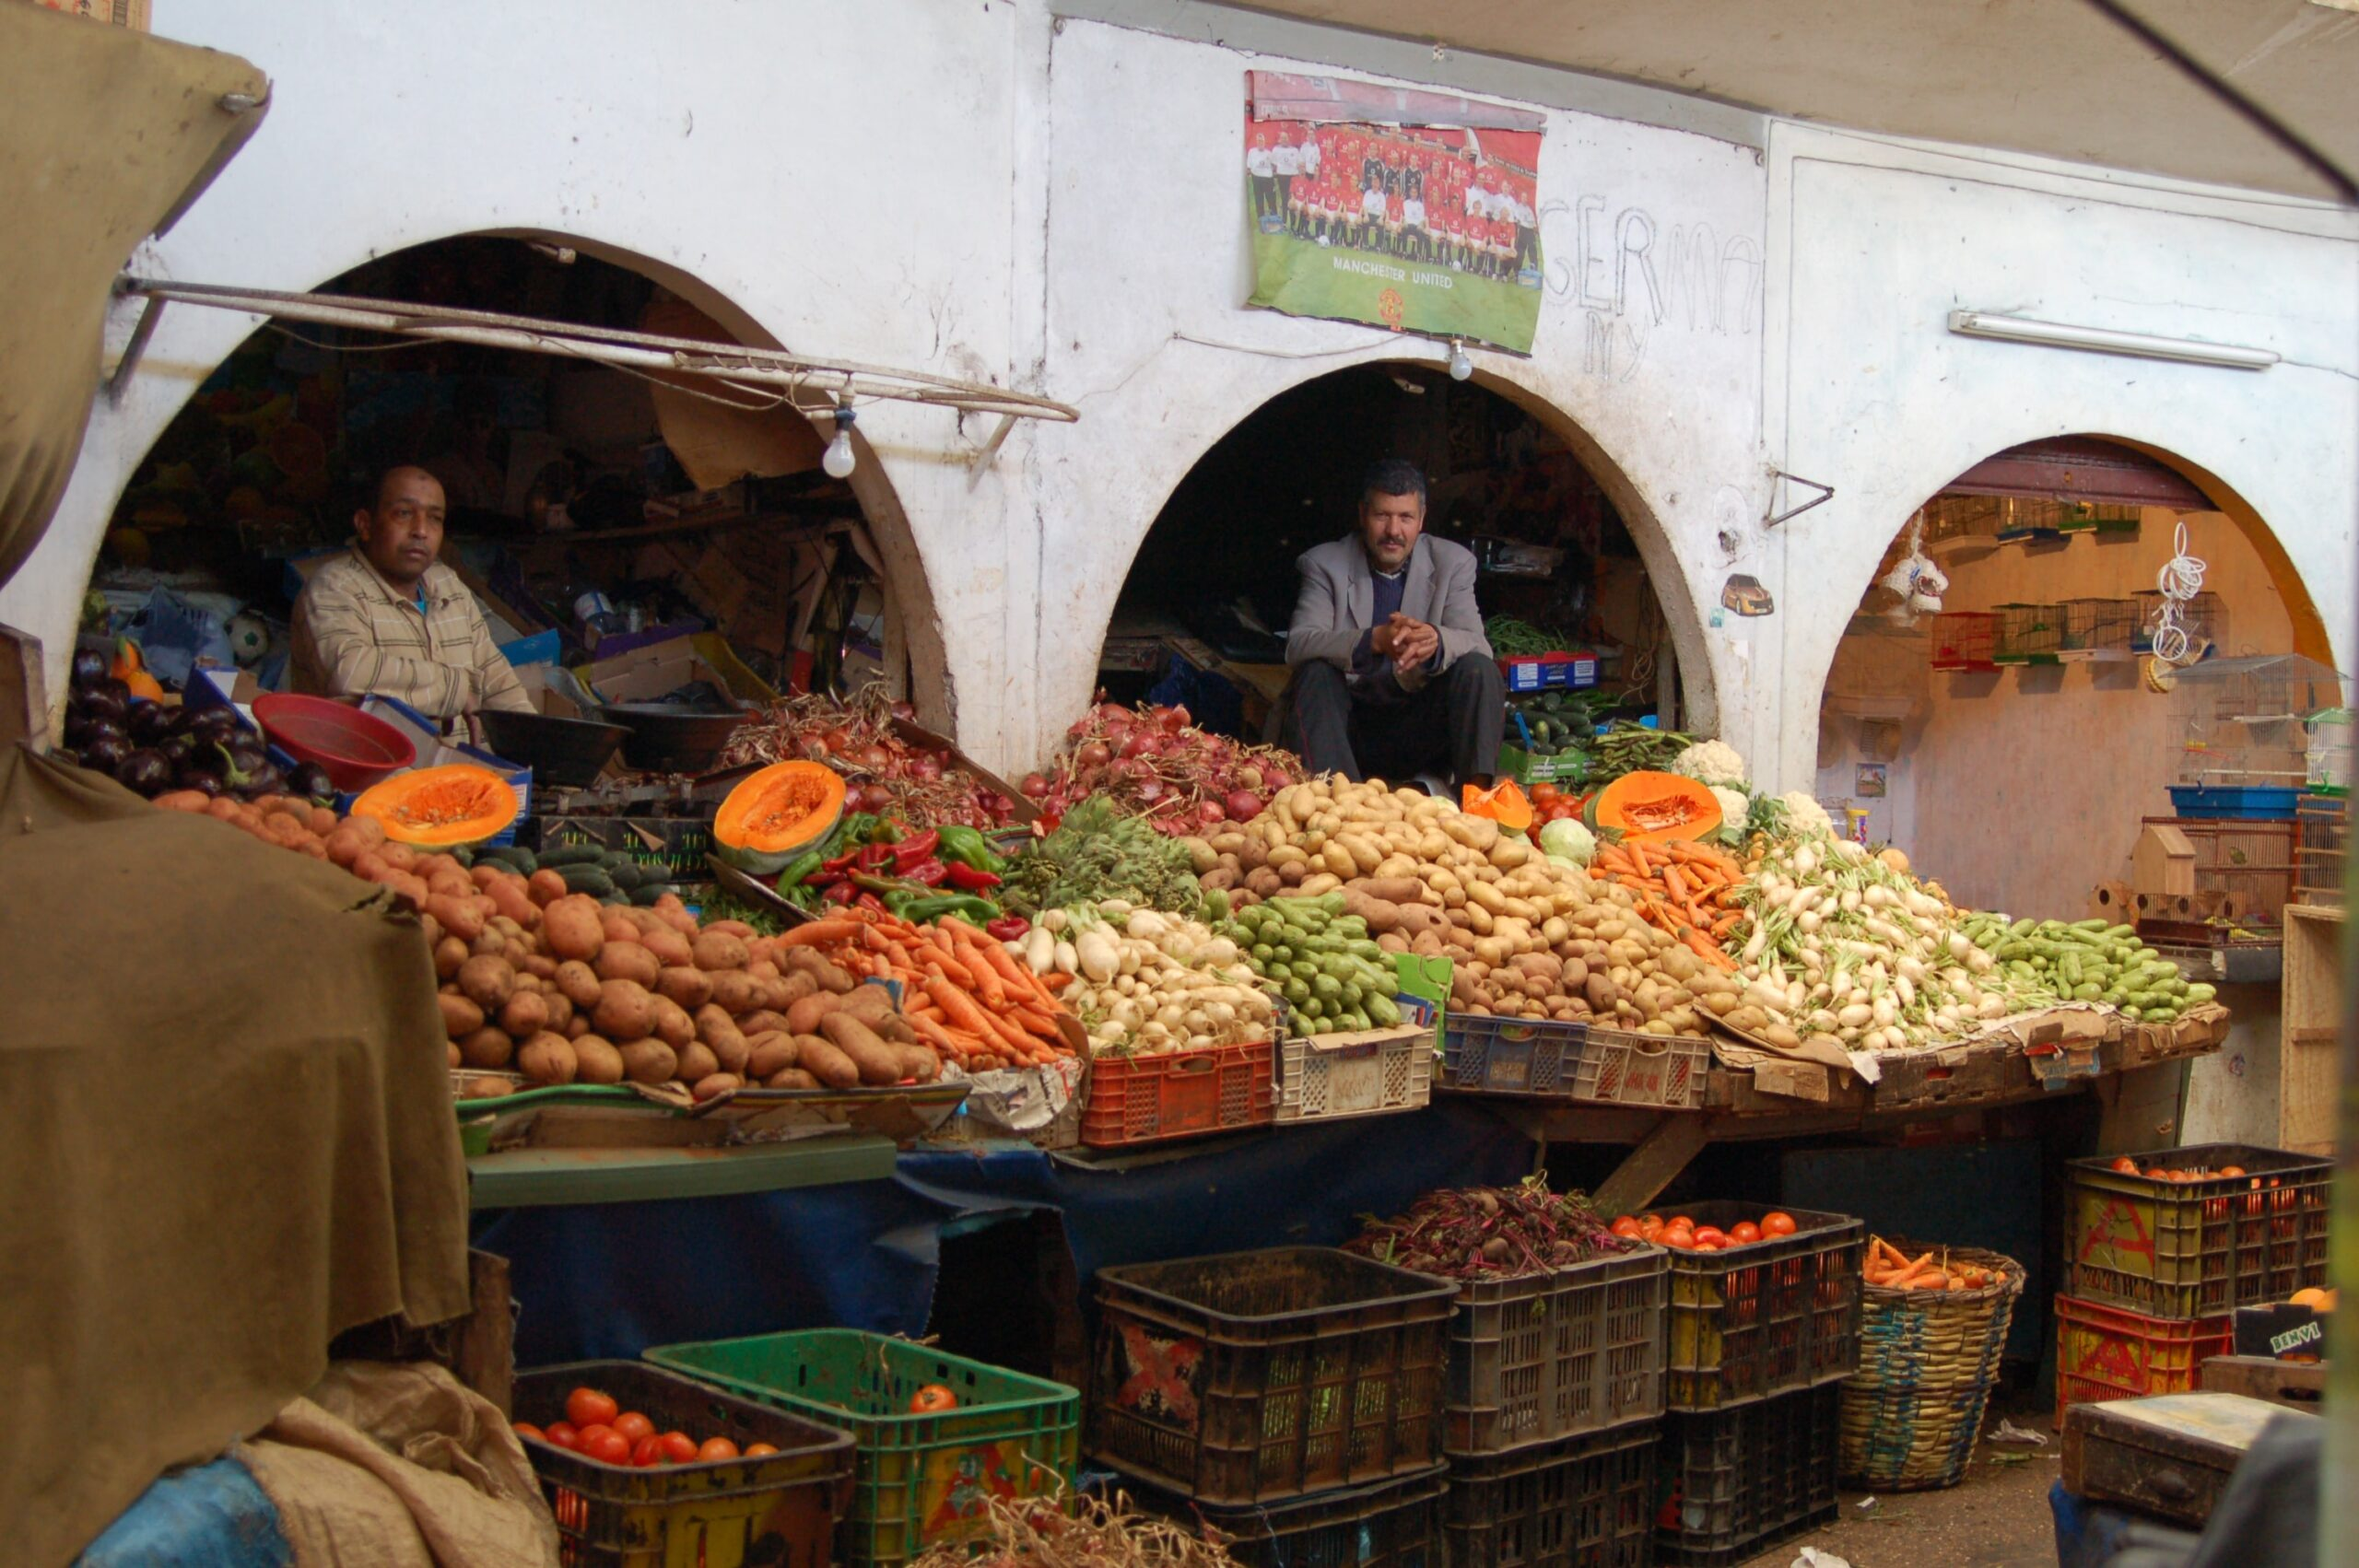 Market Stalls On Our Moroccan Food Tour In Casablanca